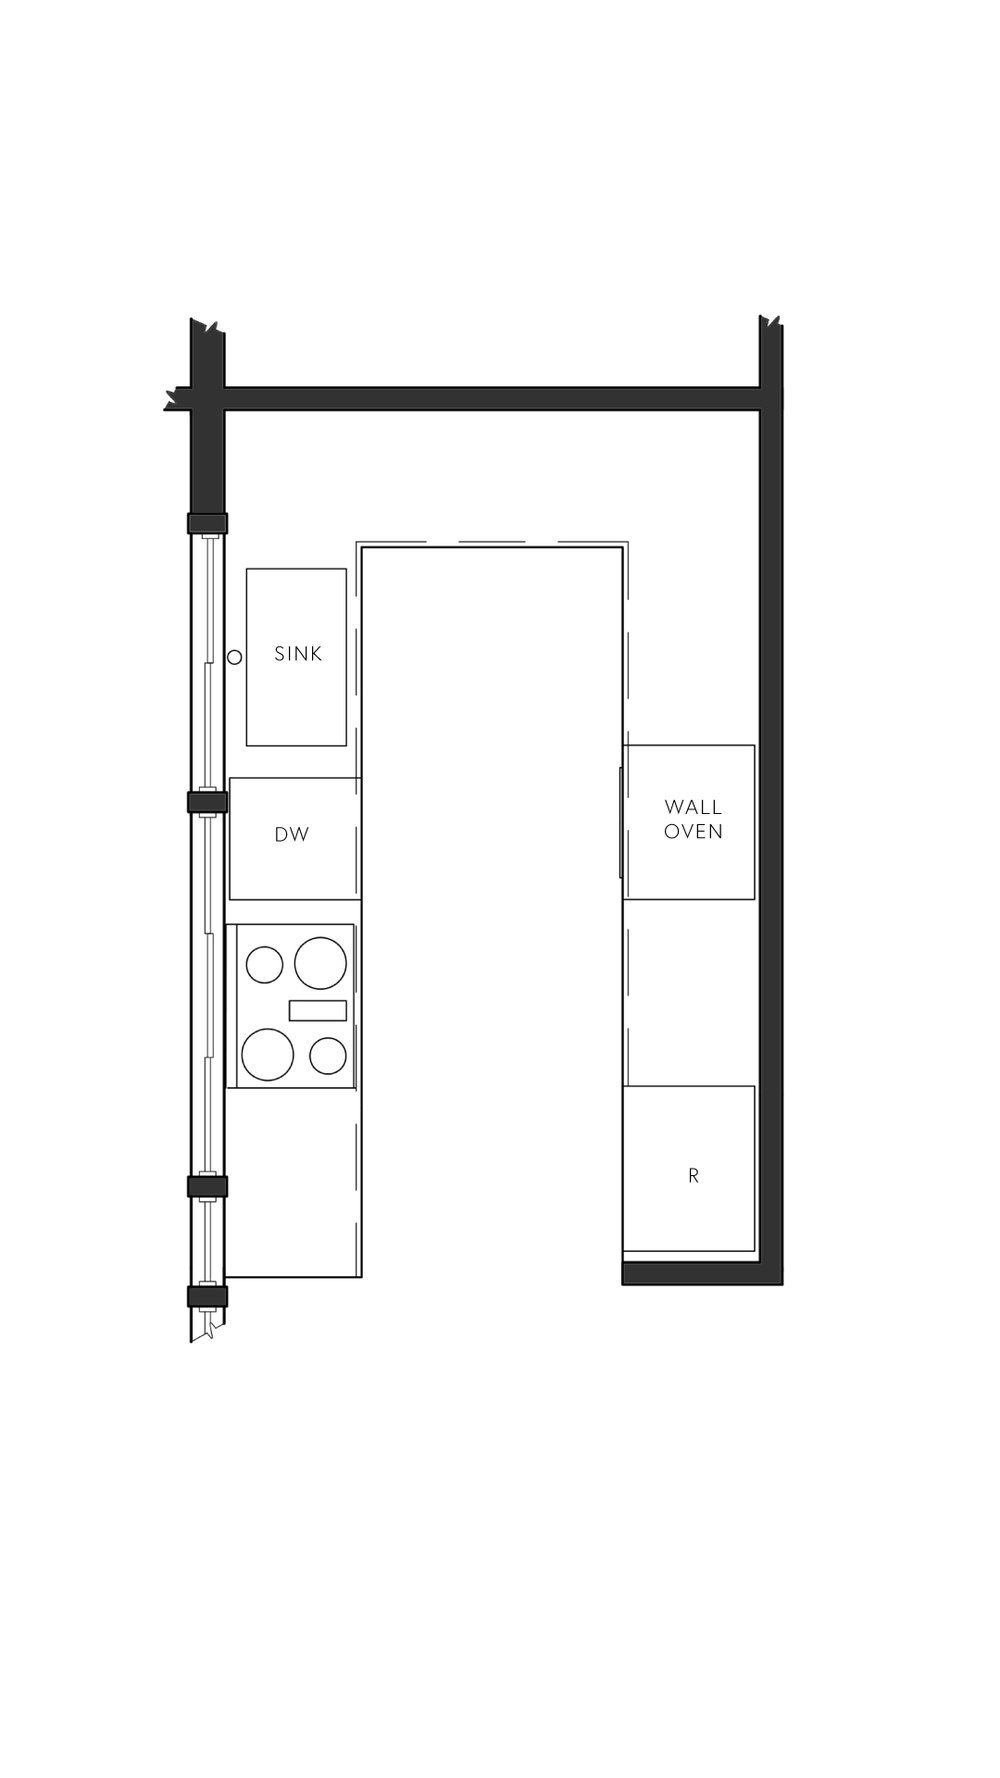 Modern Galley Kitchen Floorplan Layout with appliances and cabinets